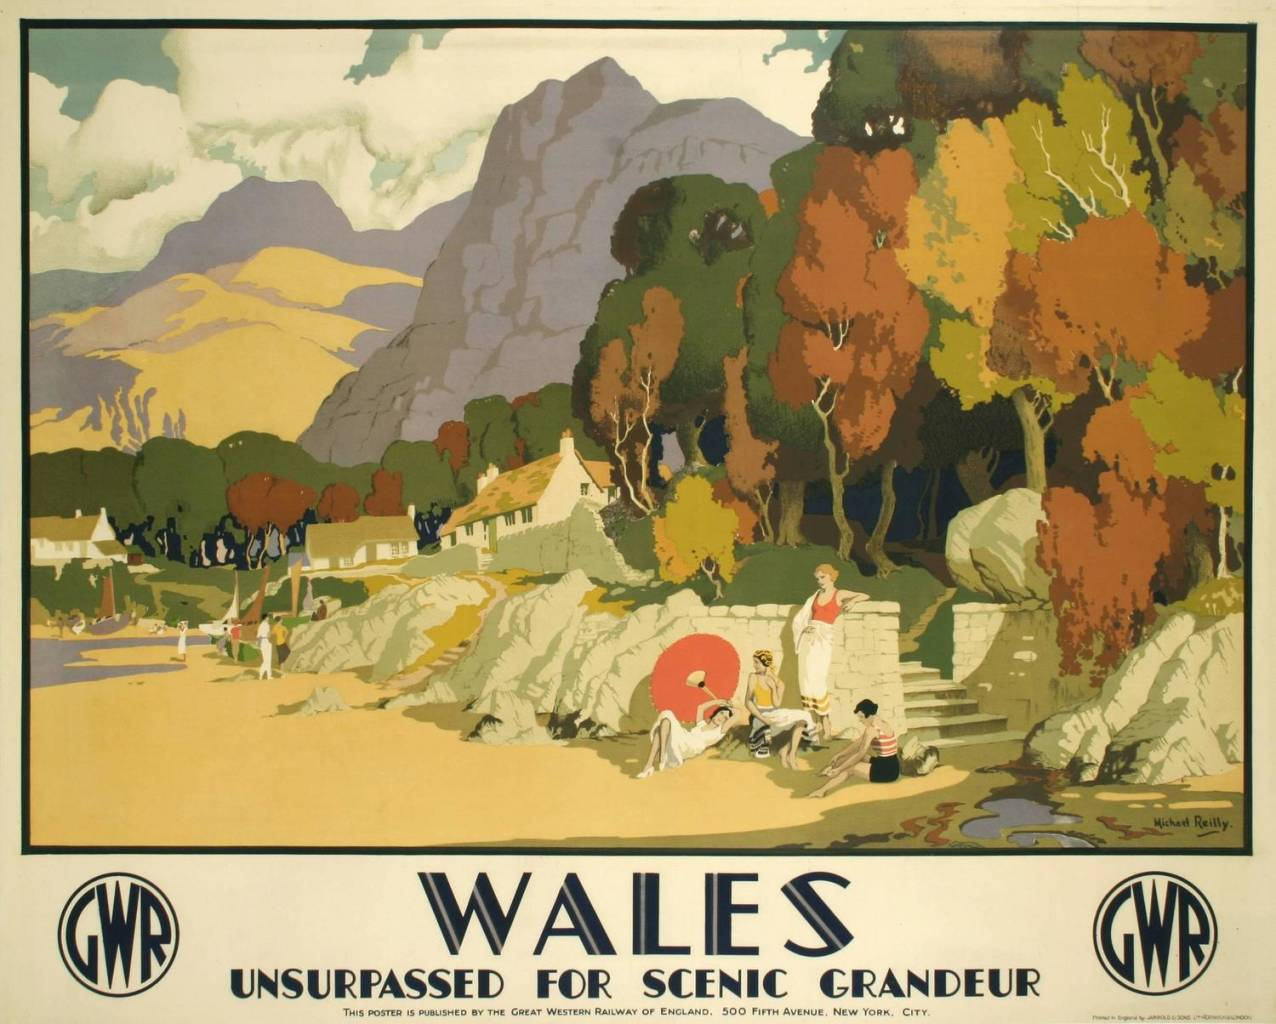 British Railway Poster by Michael Reilly, circa 1930